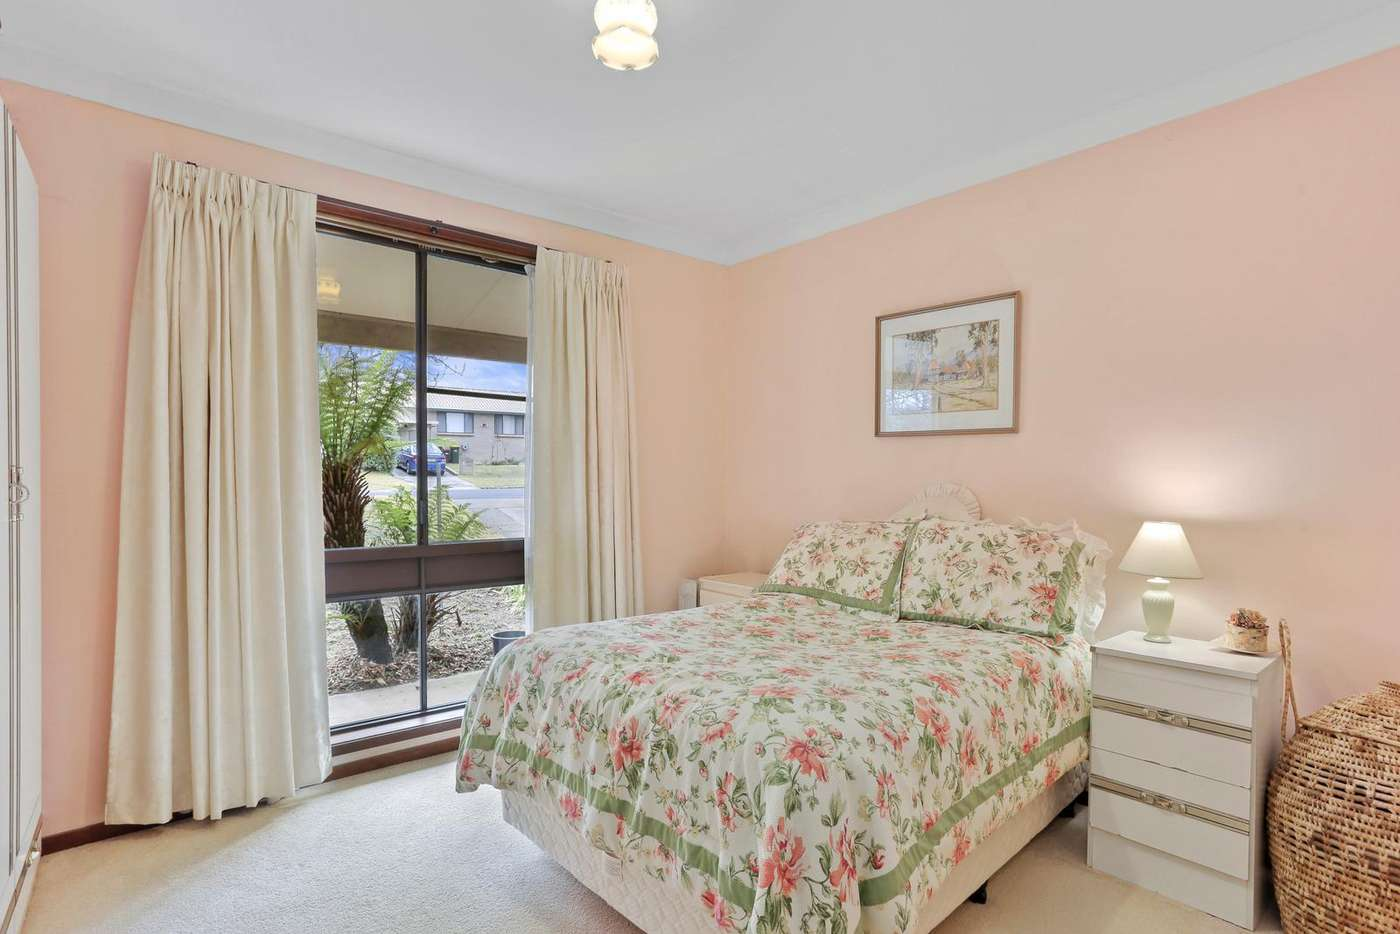 Fifth view of Homely house listing, 6 Roe Street, Moss Vale NSW 2577